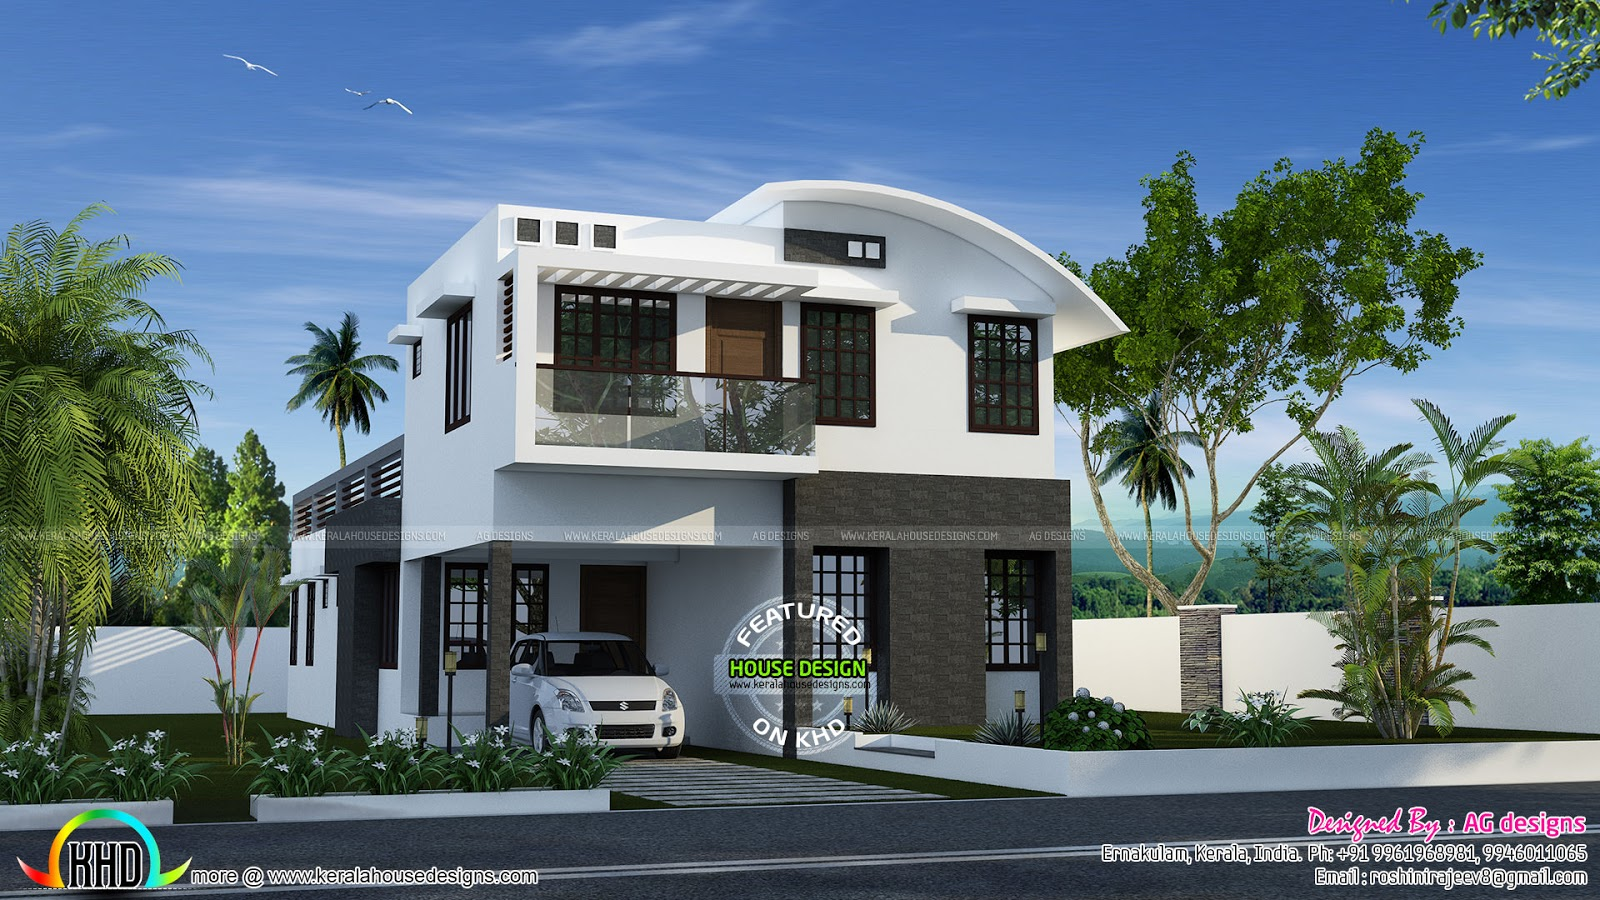 232 sq m curved roof mix house plan kerala home design and floor plans - Houses atticsquare meters ...